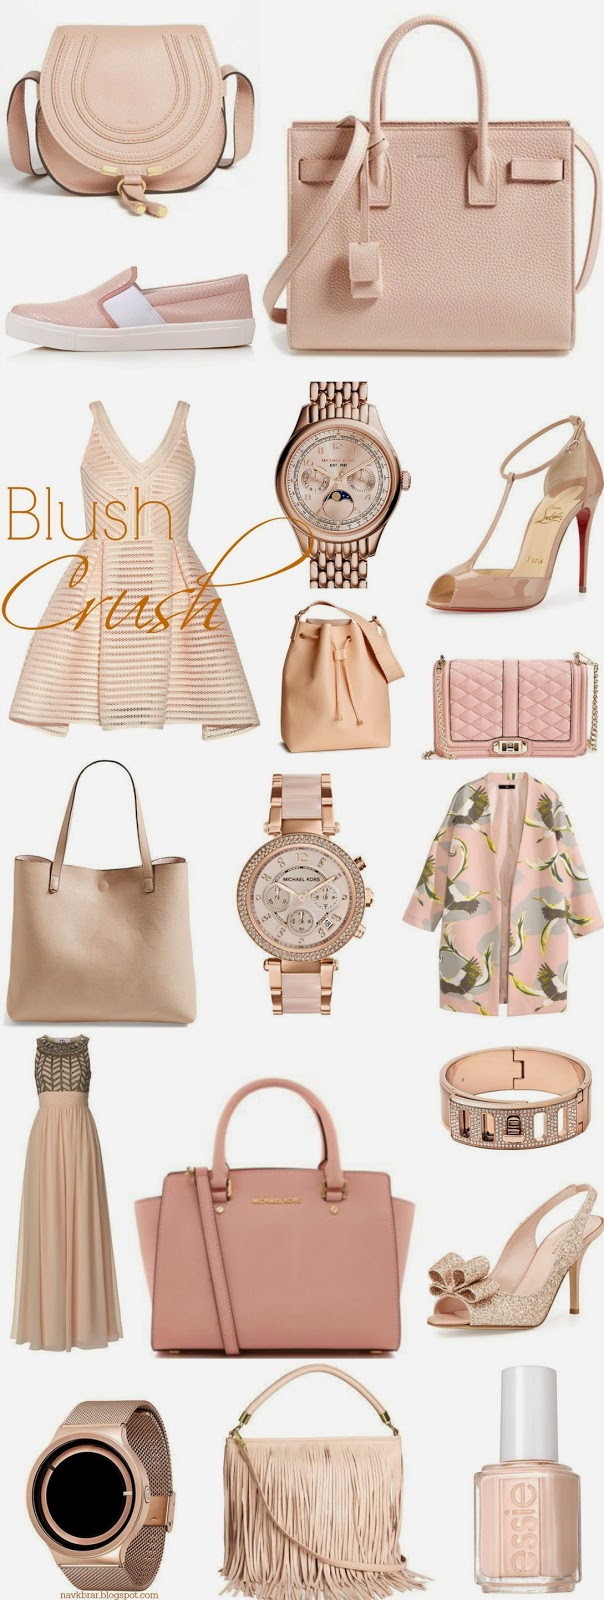 Fashion Blog: Blush coloured fashion accessories shoes, bags and dresses for spring 2015 from H&M, Burberry, essie, Michael Kors, Louboutin, YSL, Manolo Blahnik, Chloe